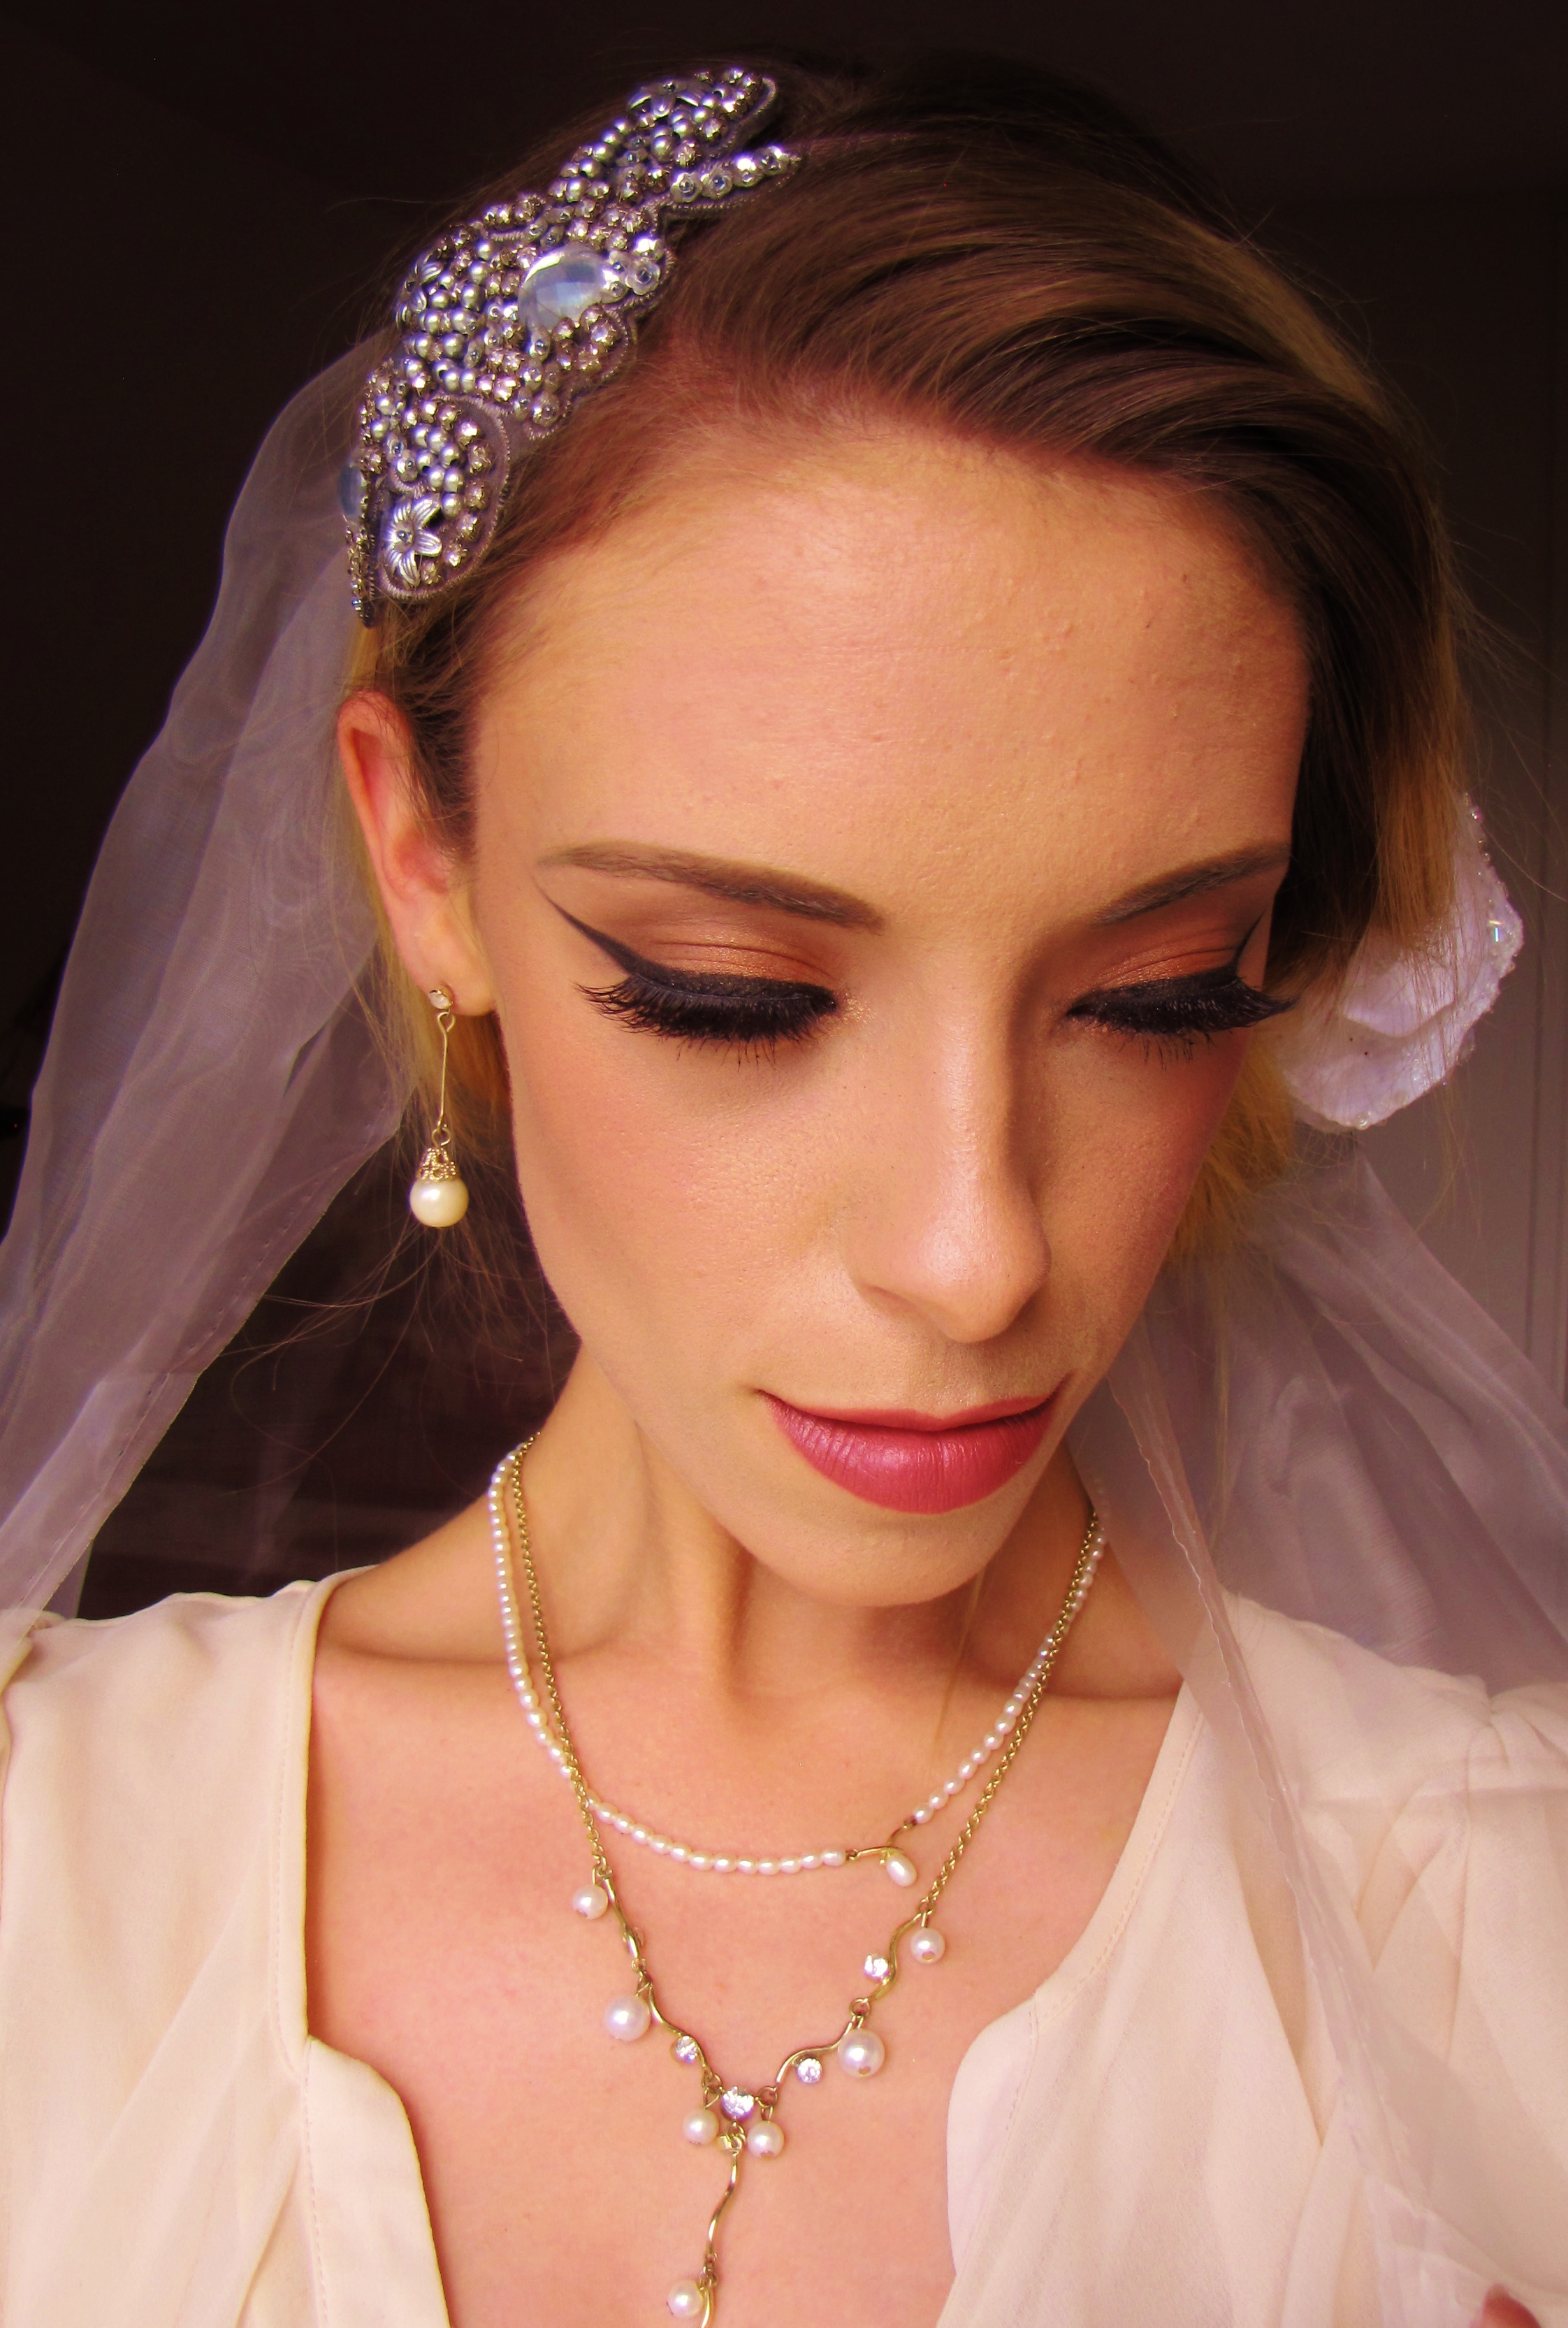 Make Up Artists Advice Doing Your Own Wedding Day